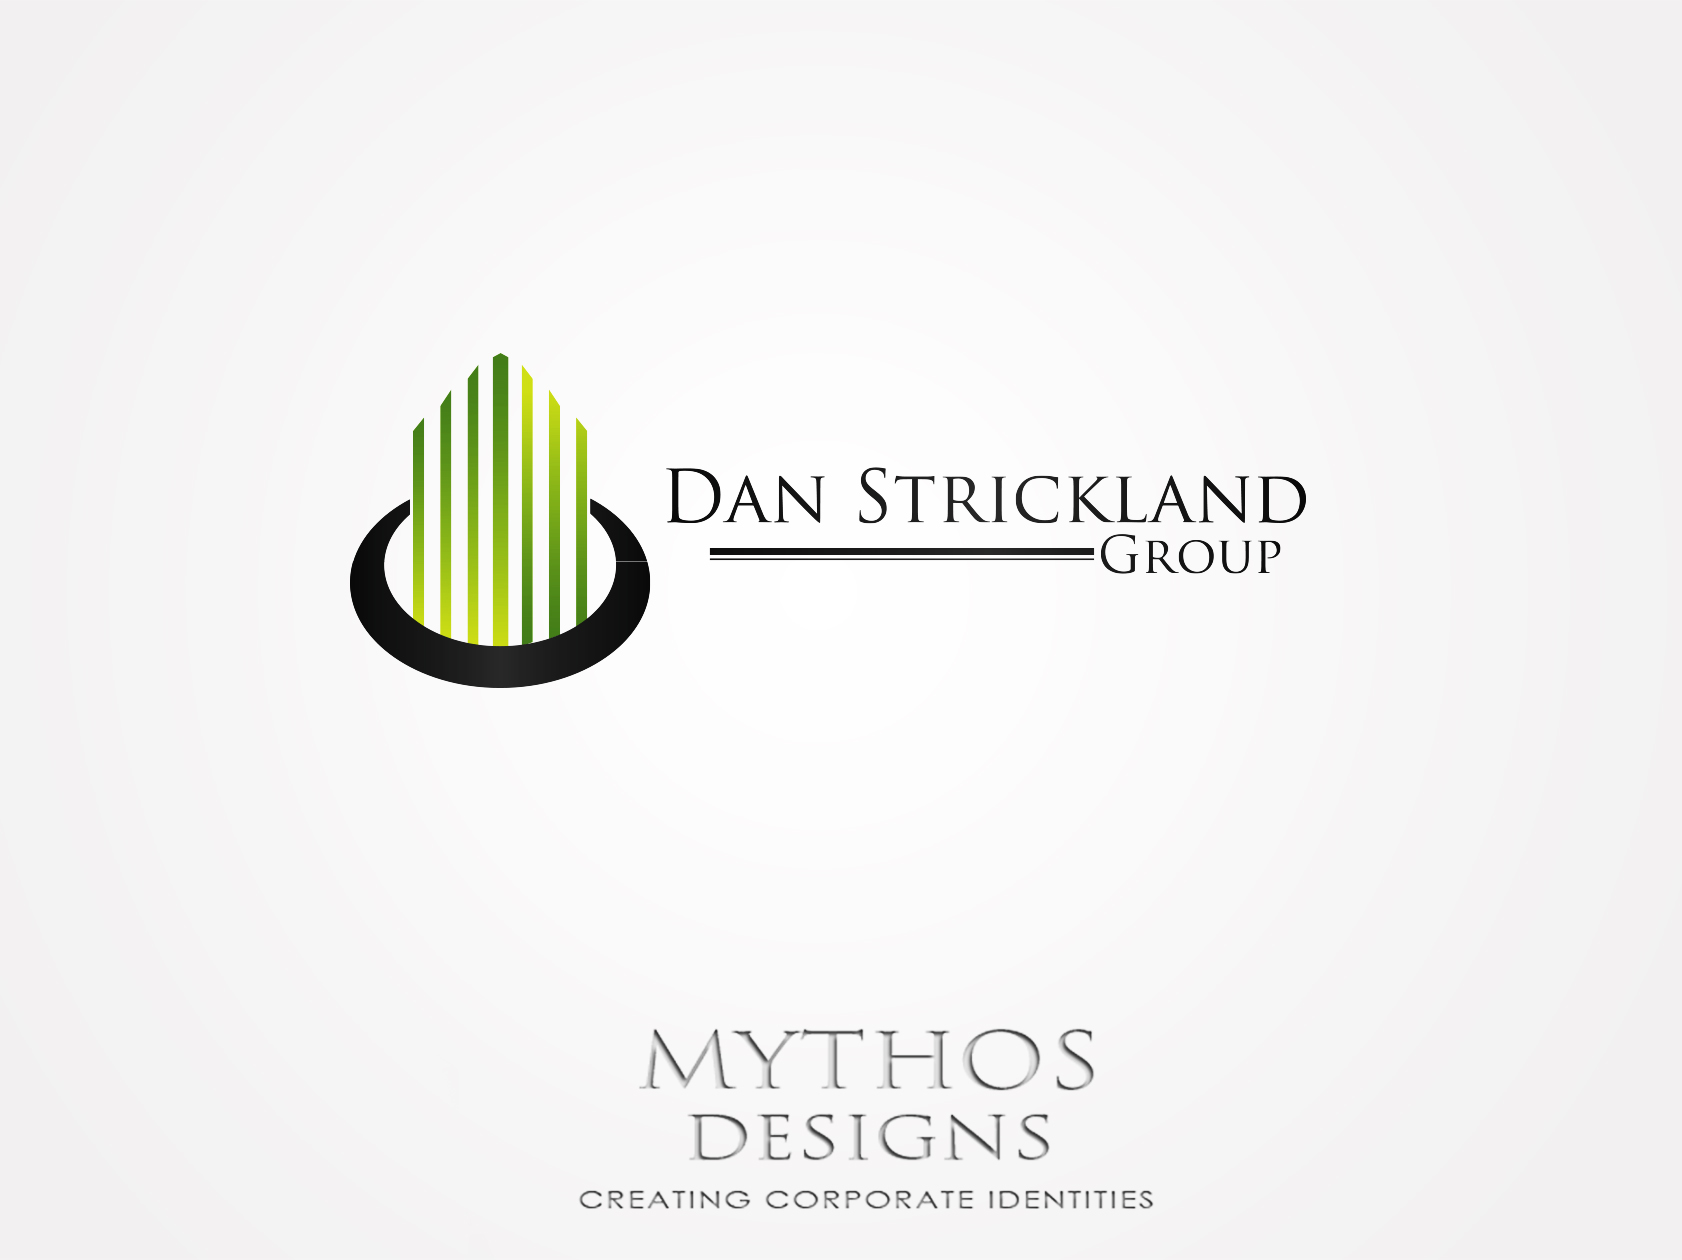 Logo Design by Mythos Designs - Entry No. 10 in the Logo Design Contest Creative Logo Design for The Dan Strickland Group.